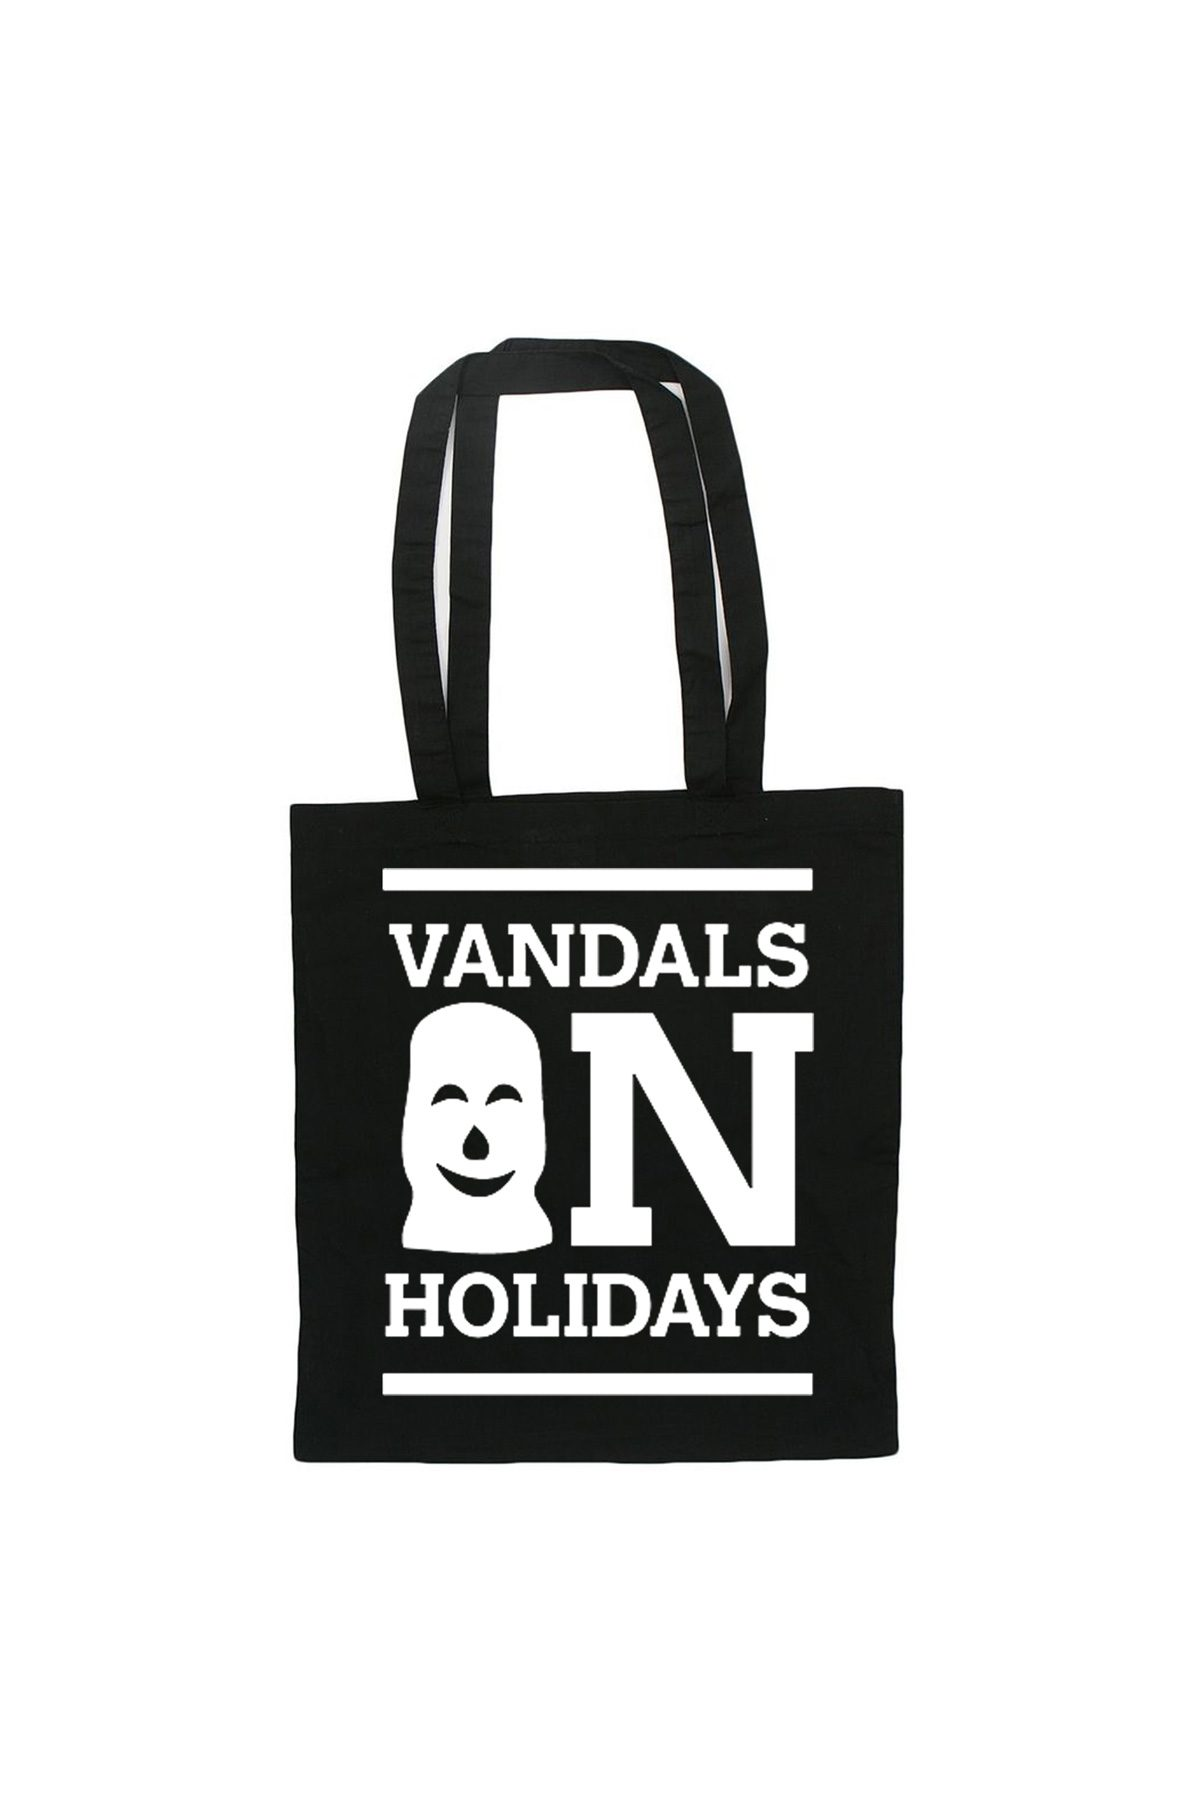 Vandals On Holidays LOGO Cotton Bag